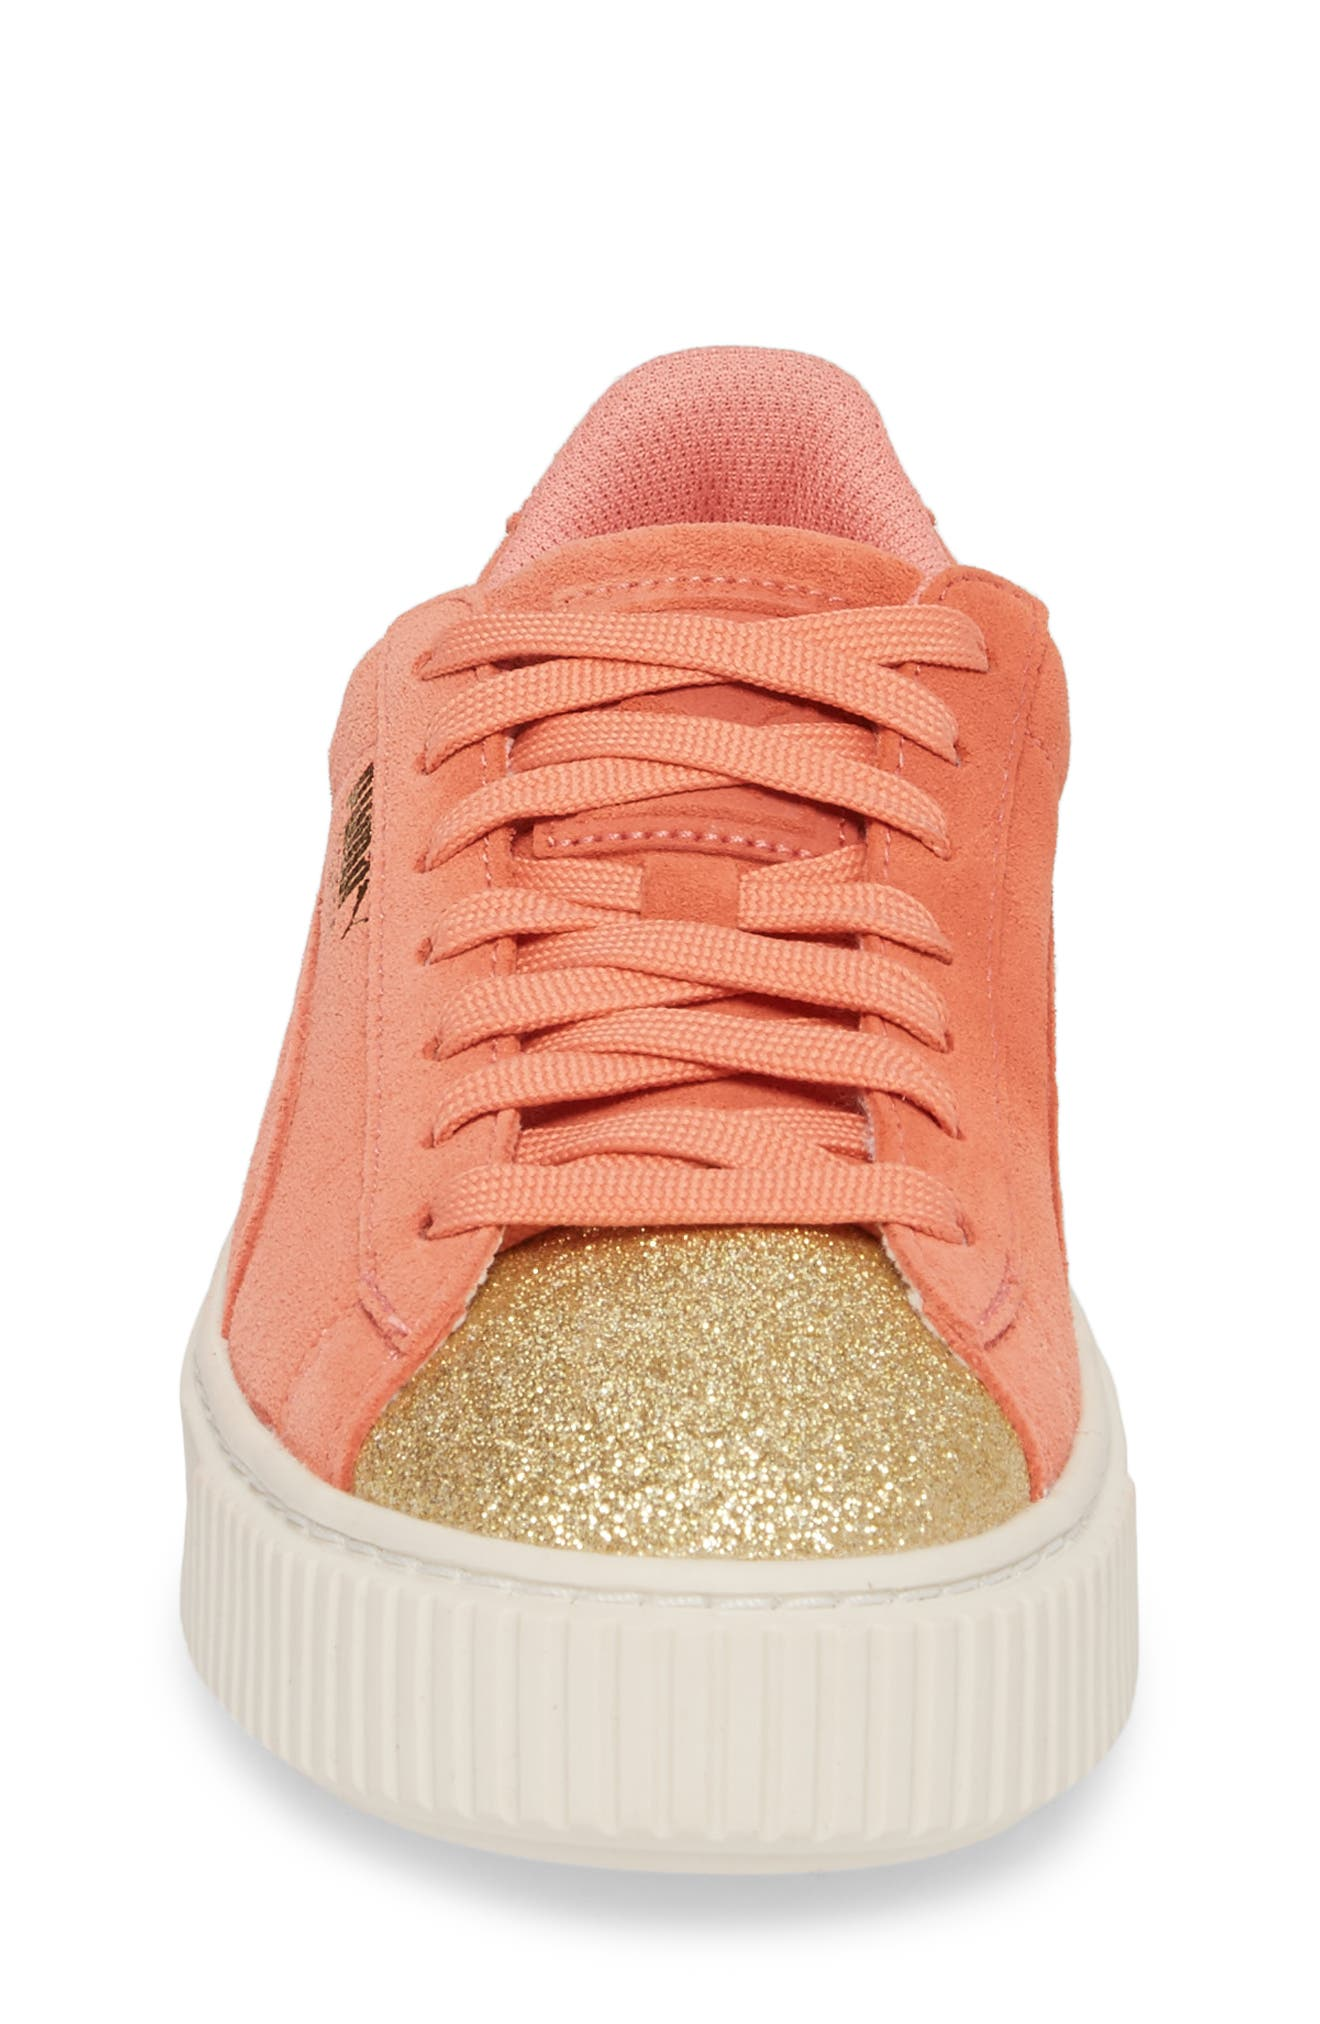 Suede Platform Glam PS Sneaker,                             Alternate thumbnail 4, color,                             Puma Team Gold/ Shell Pink